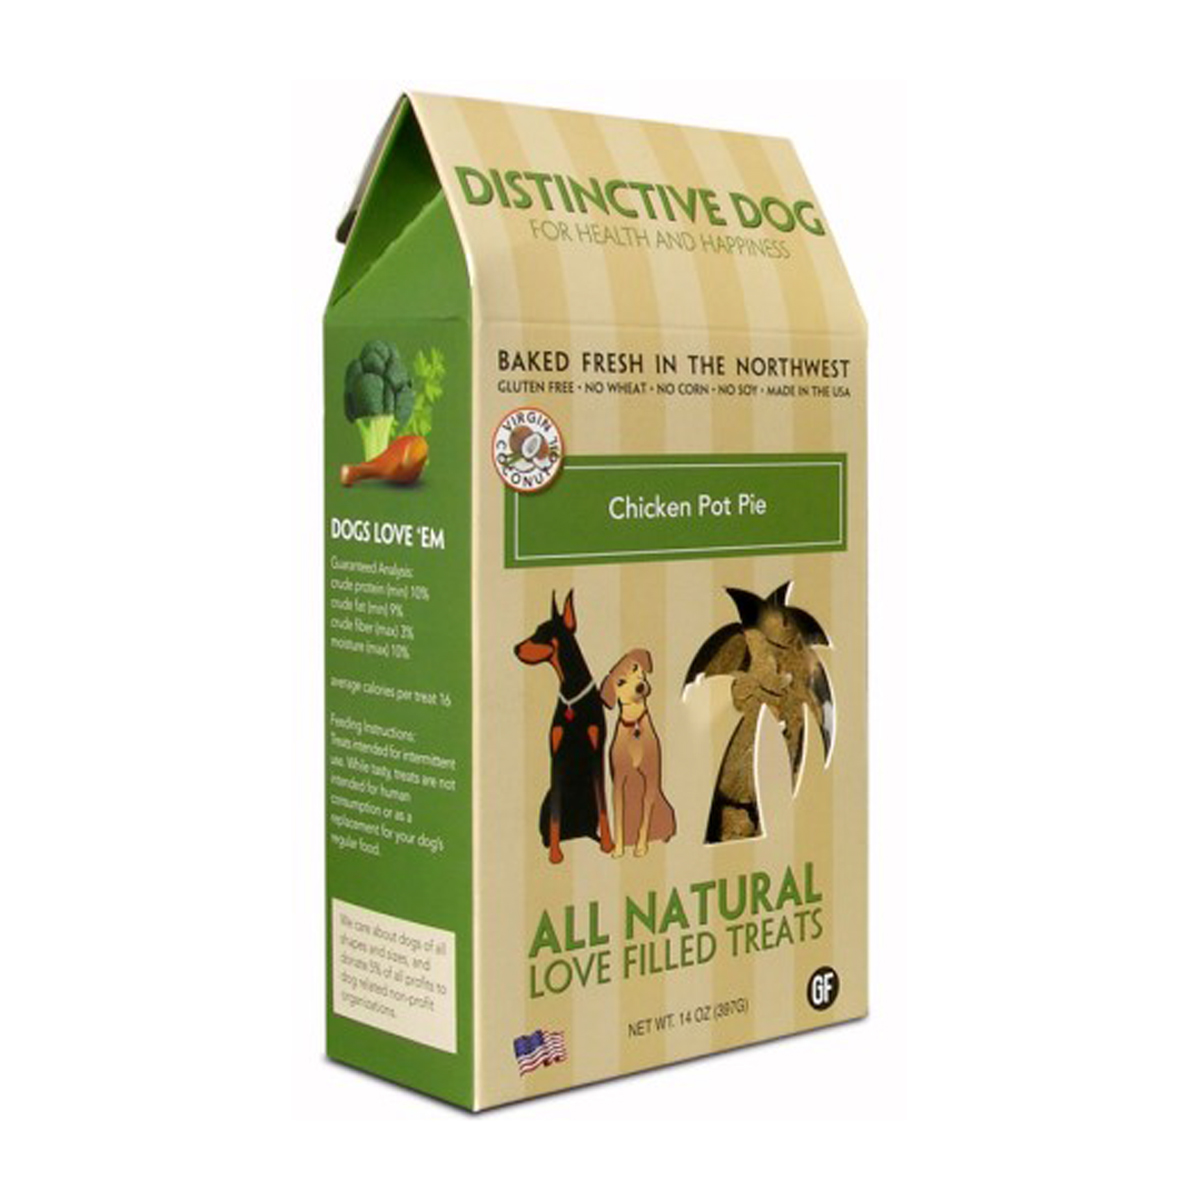 Distinctive Dog All Natural Dog Treats - Chicken Pot Pie